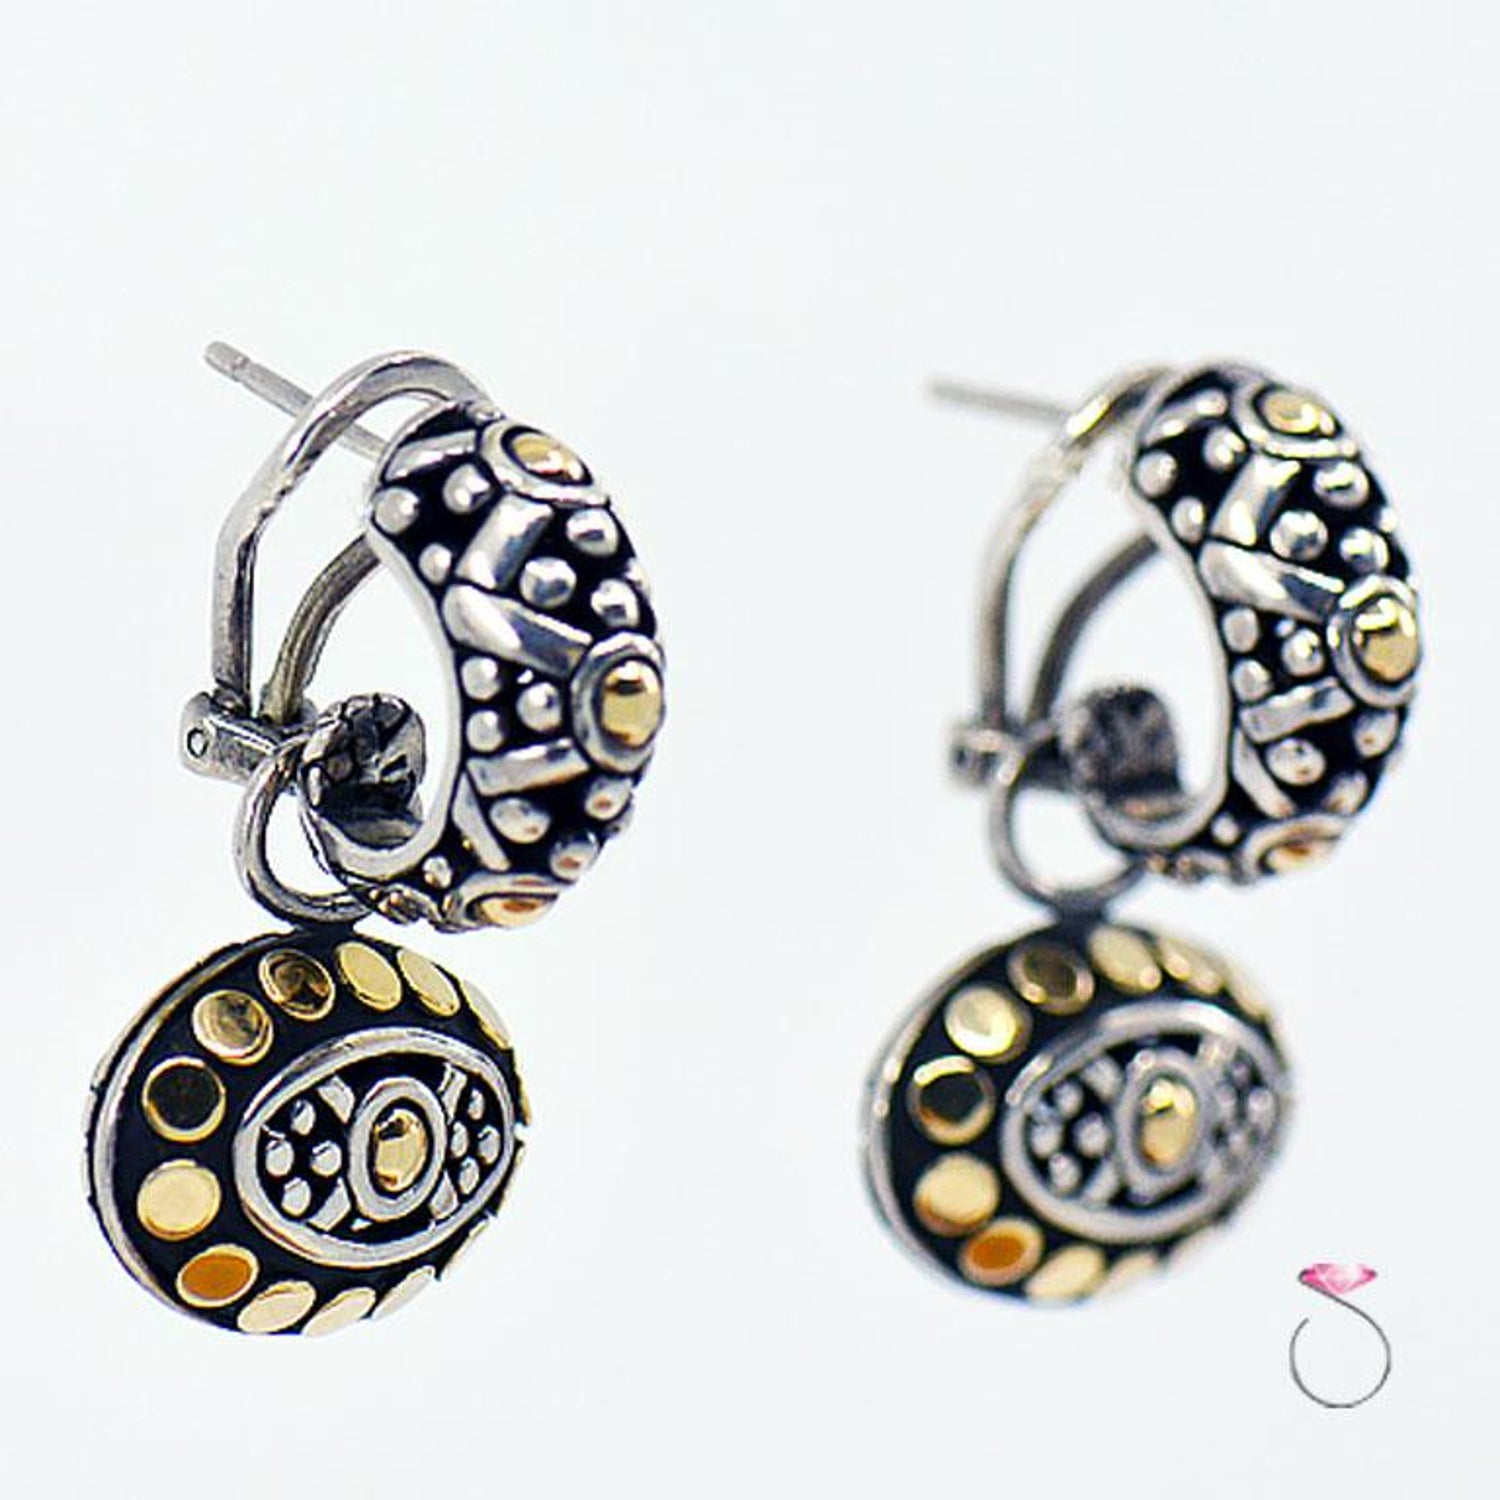 0076fbe18 John Hardy Dot Collection Earrings, Sterling Silver and 18 Karat Yellow  Gold For Sale at 1stdibs